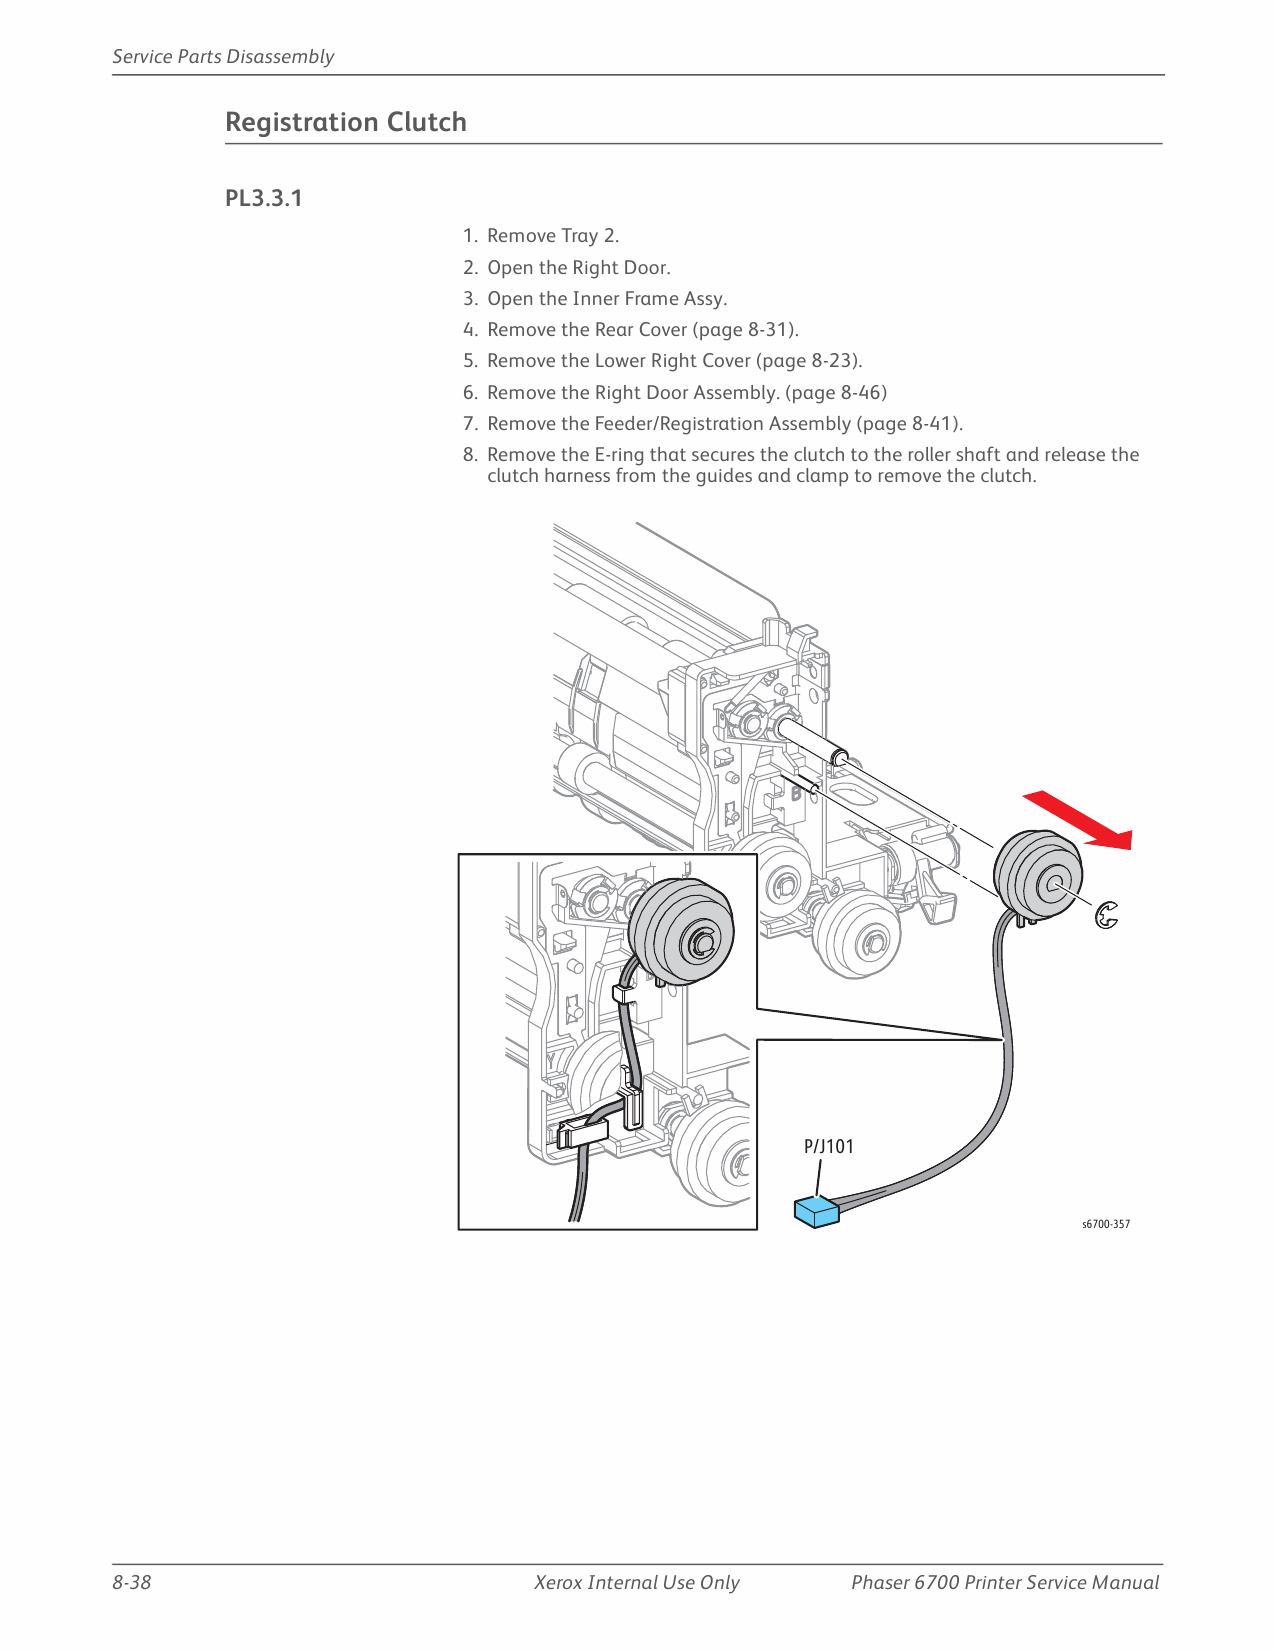 Xerox Phaser 6700 Parts List and Service Manual